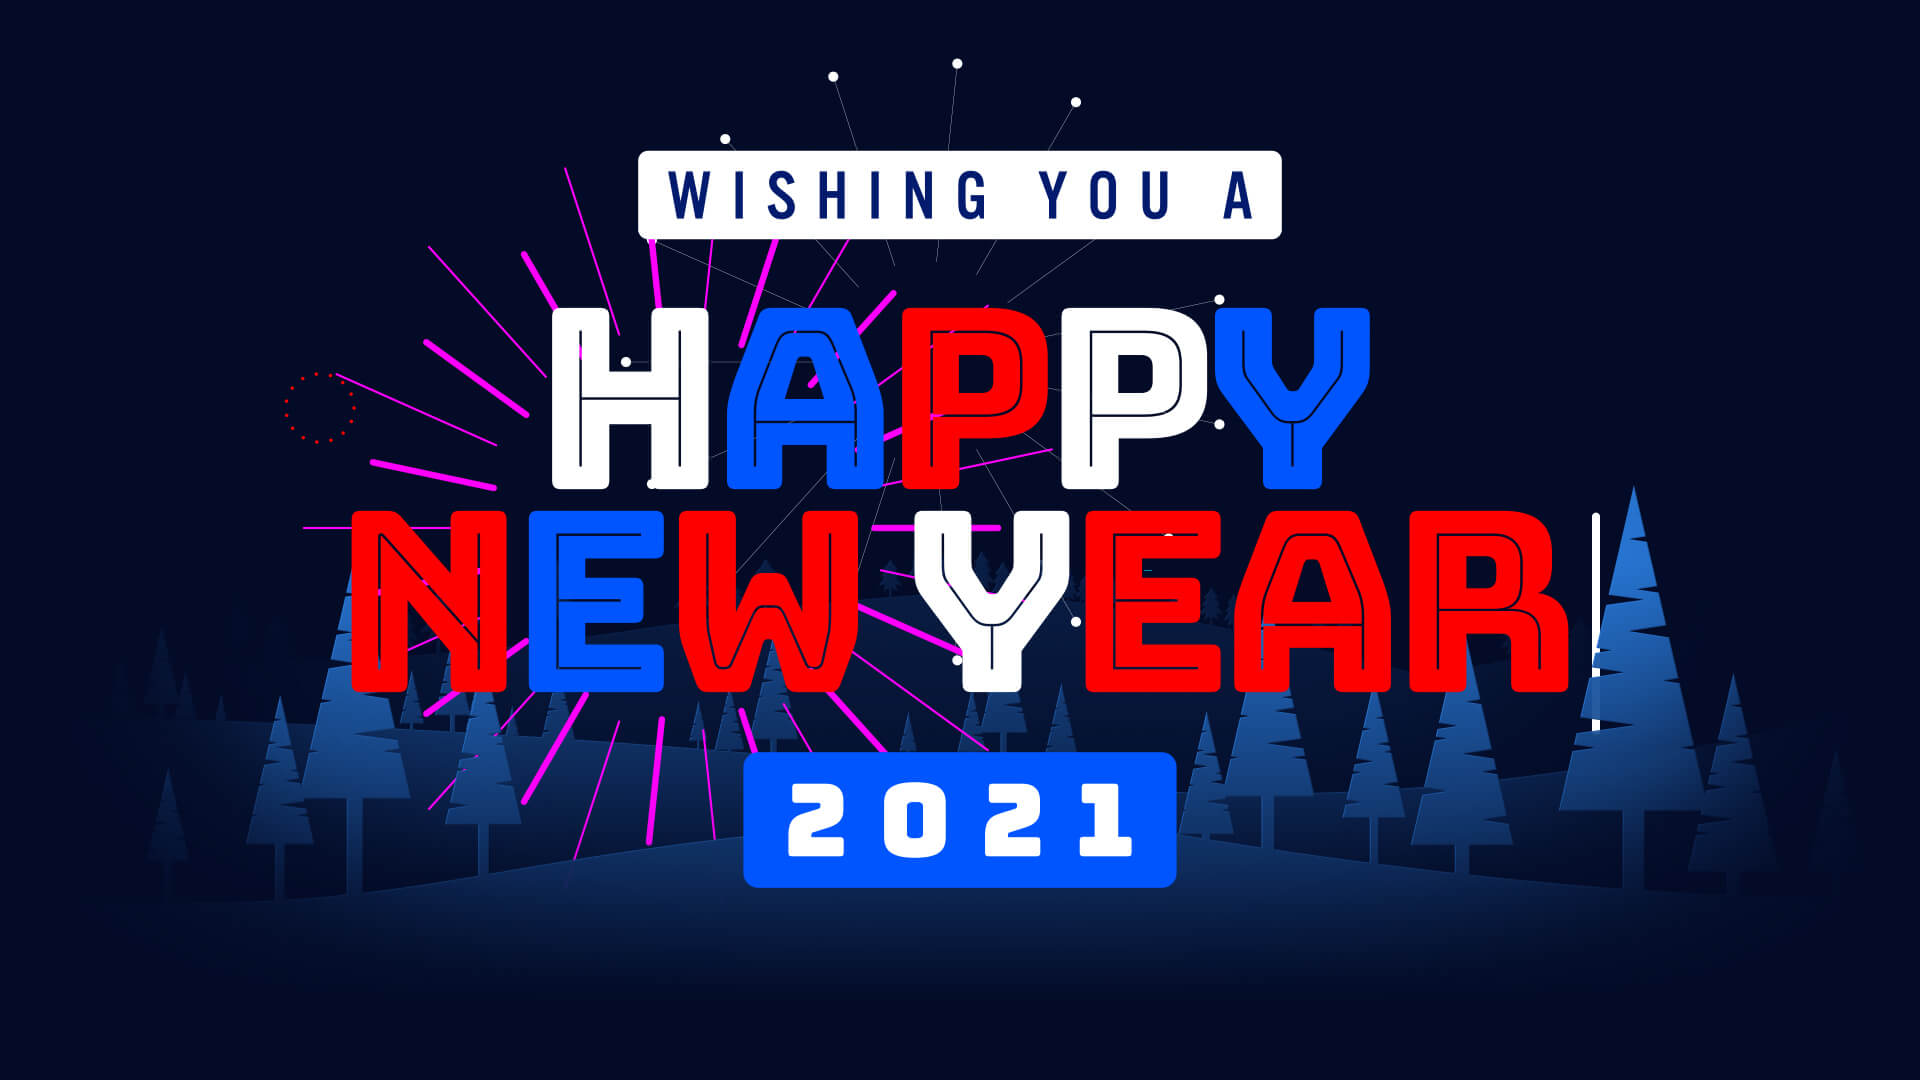 Wishing Happy New Year 2021 Fireworks Animation Video Still